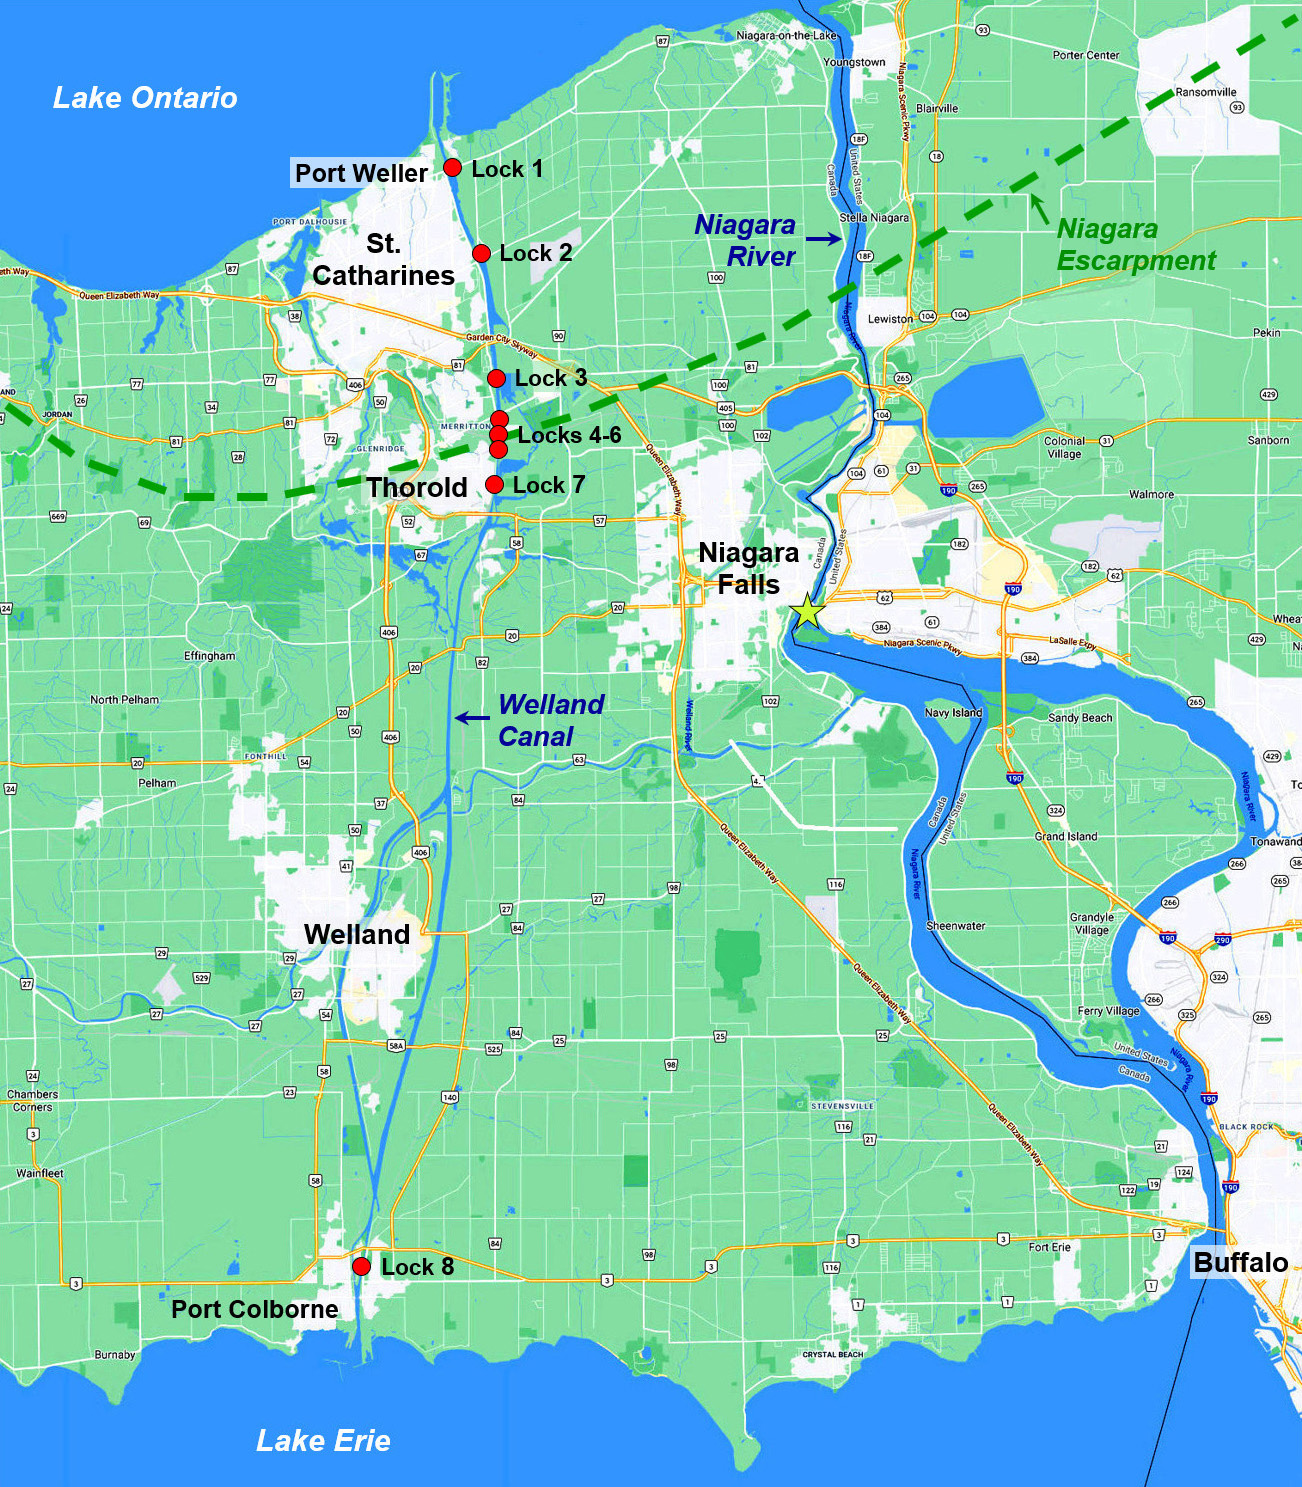 Niagara Peninsula and Welland Canal map